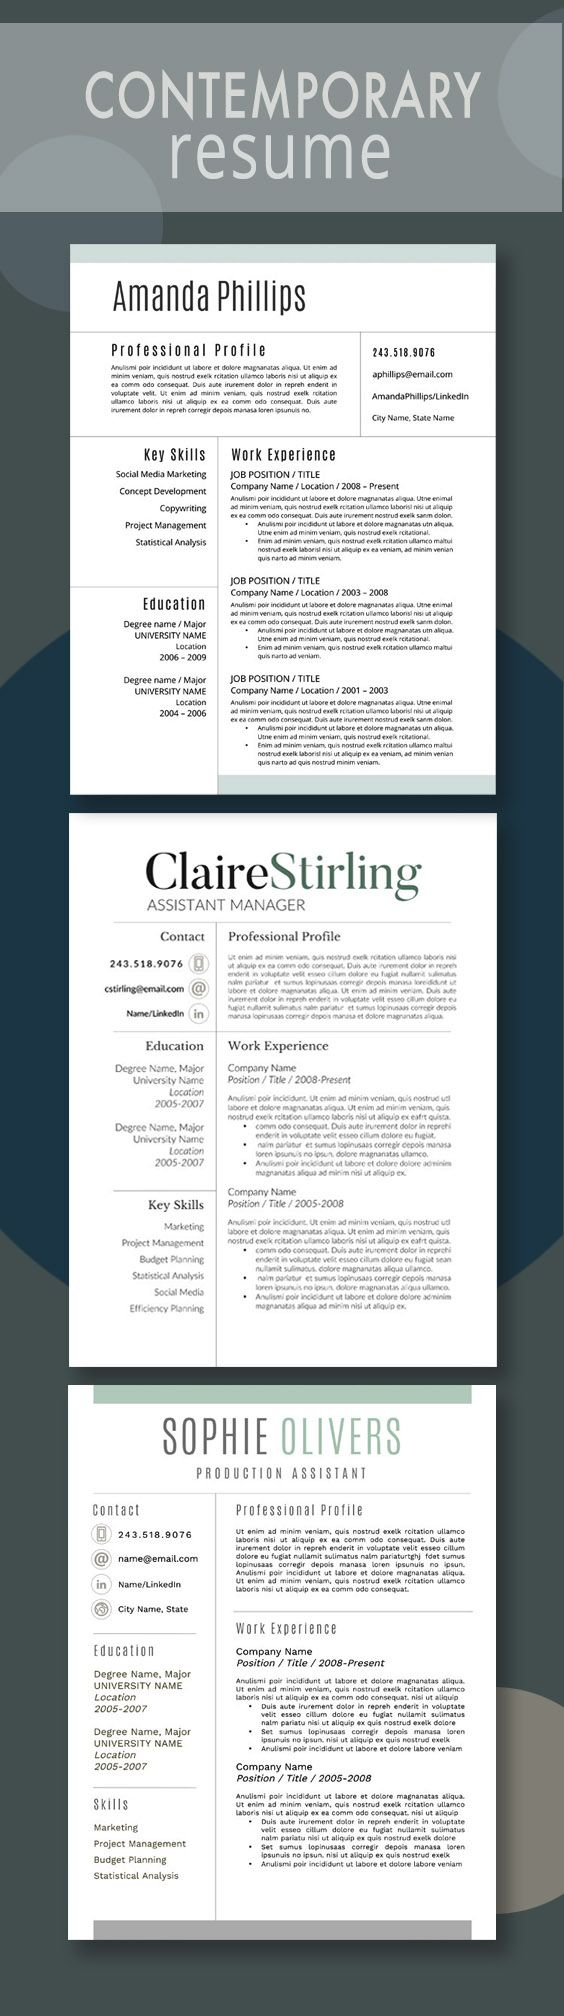 best ideas about resume templates resume resume super happy my resume template great service easy to use microsoft word